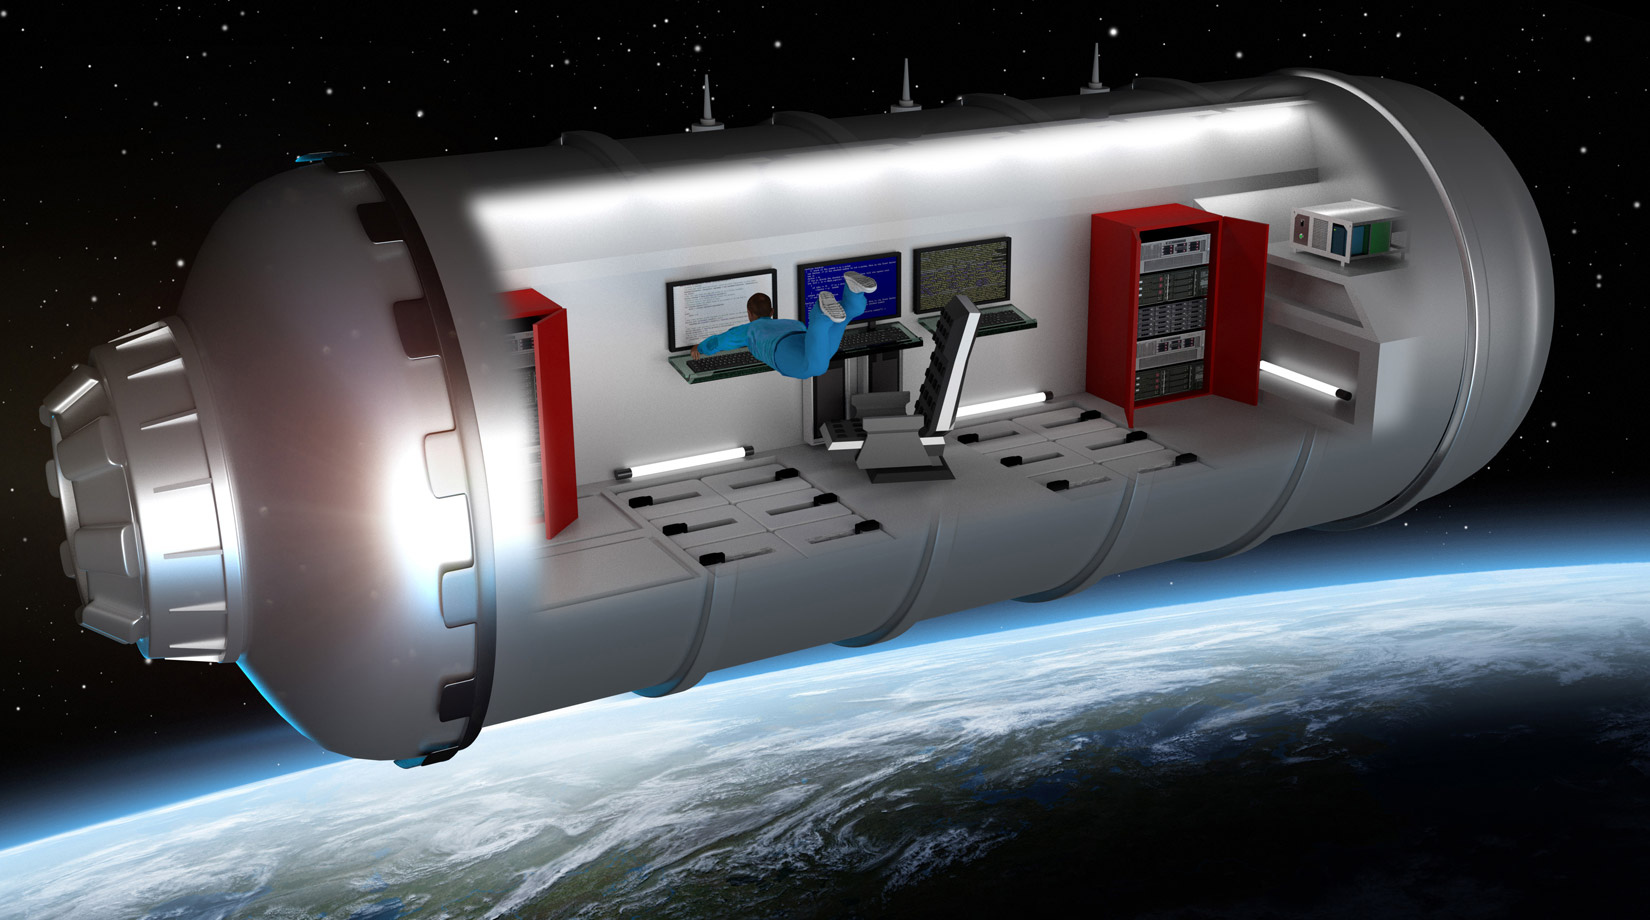 Dynetics to build carbon dioxide scrubbers for space thumbnail image